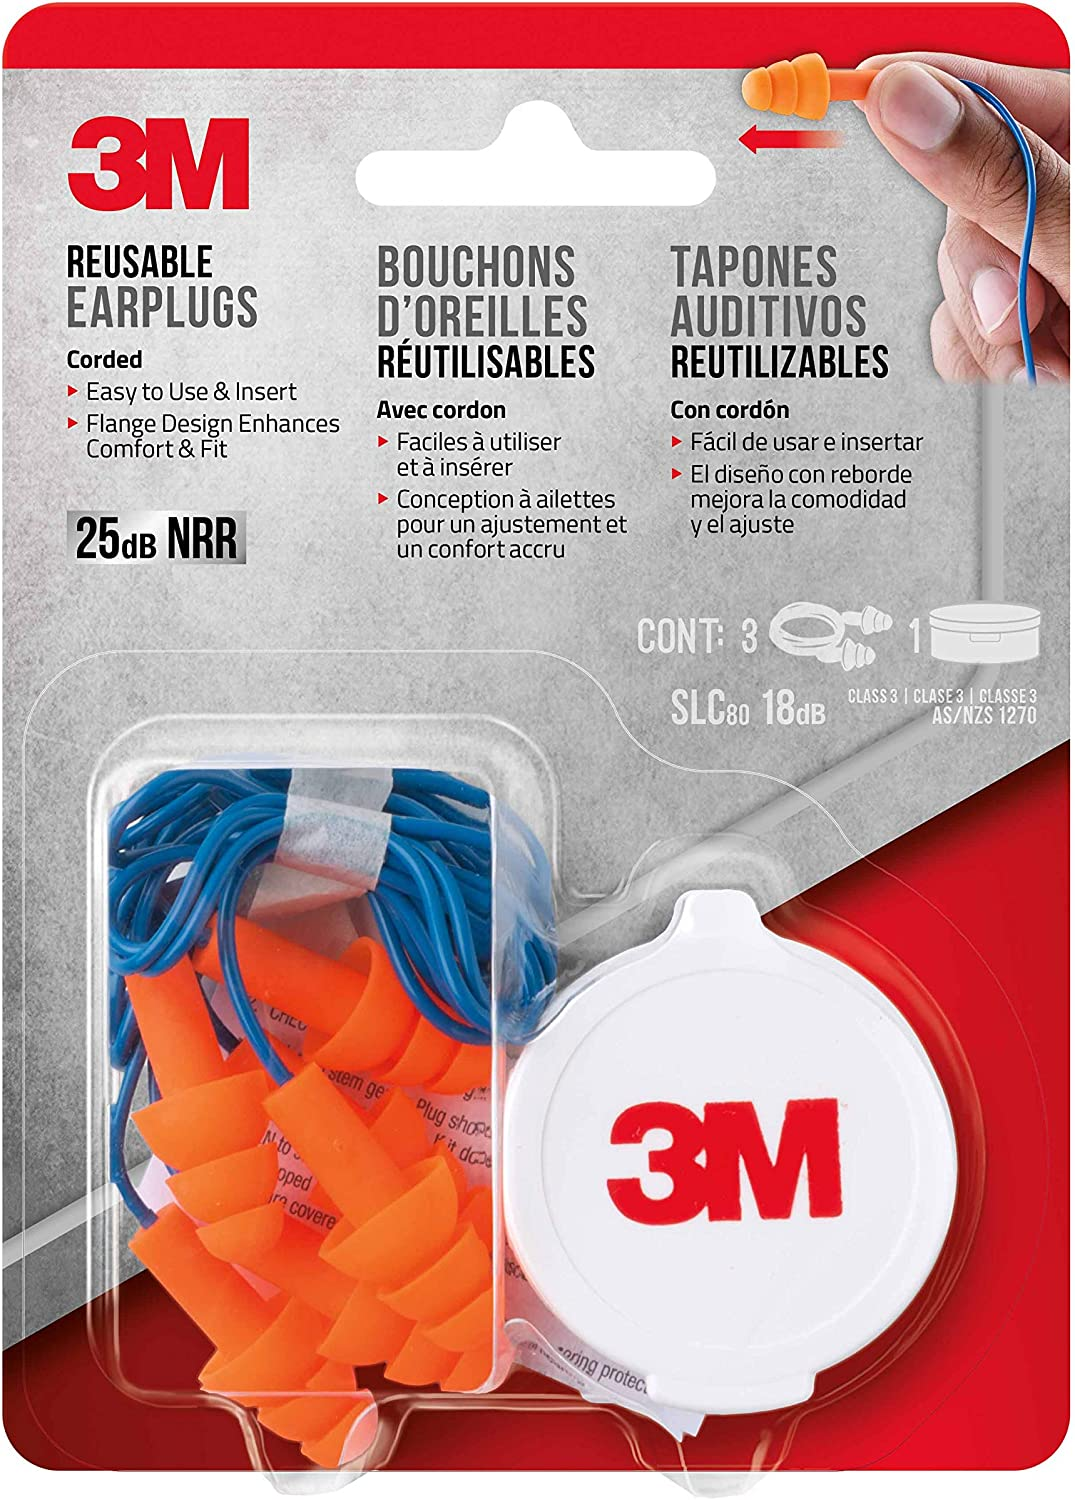 3M Corded Reusable Earplugs, 3-Pair with Case (90716-80025T): Home Improvement